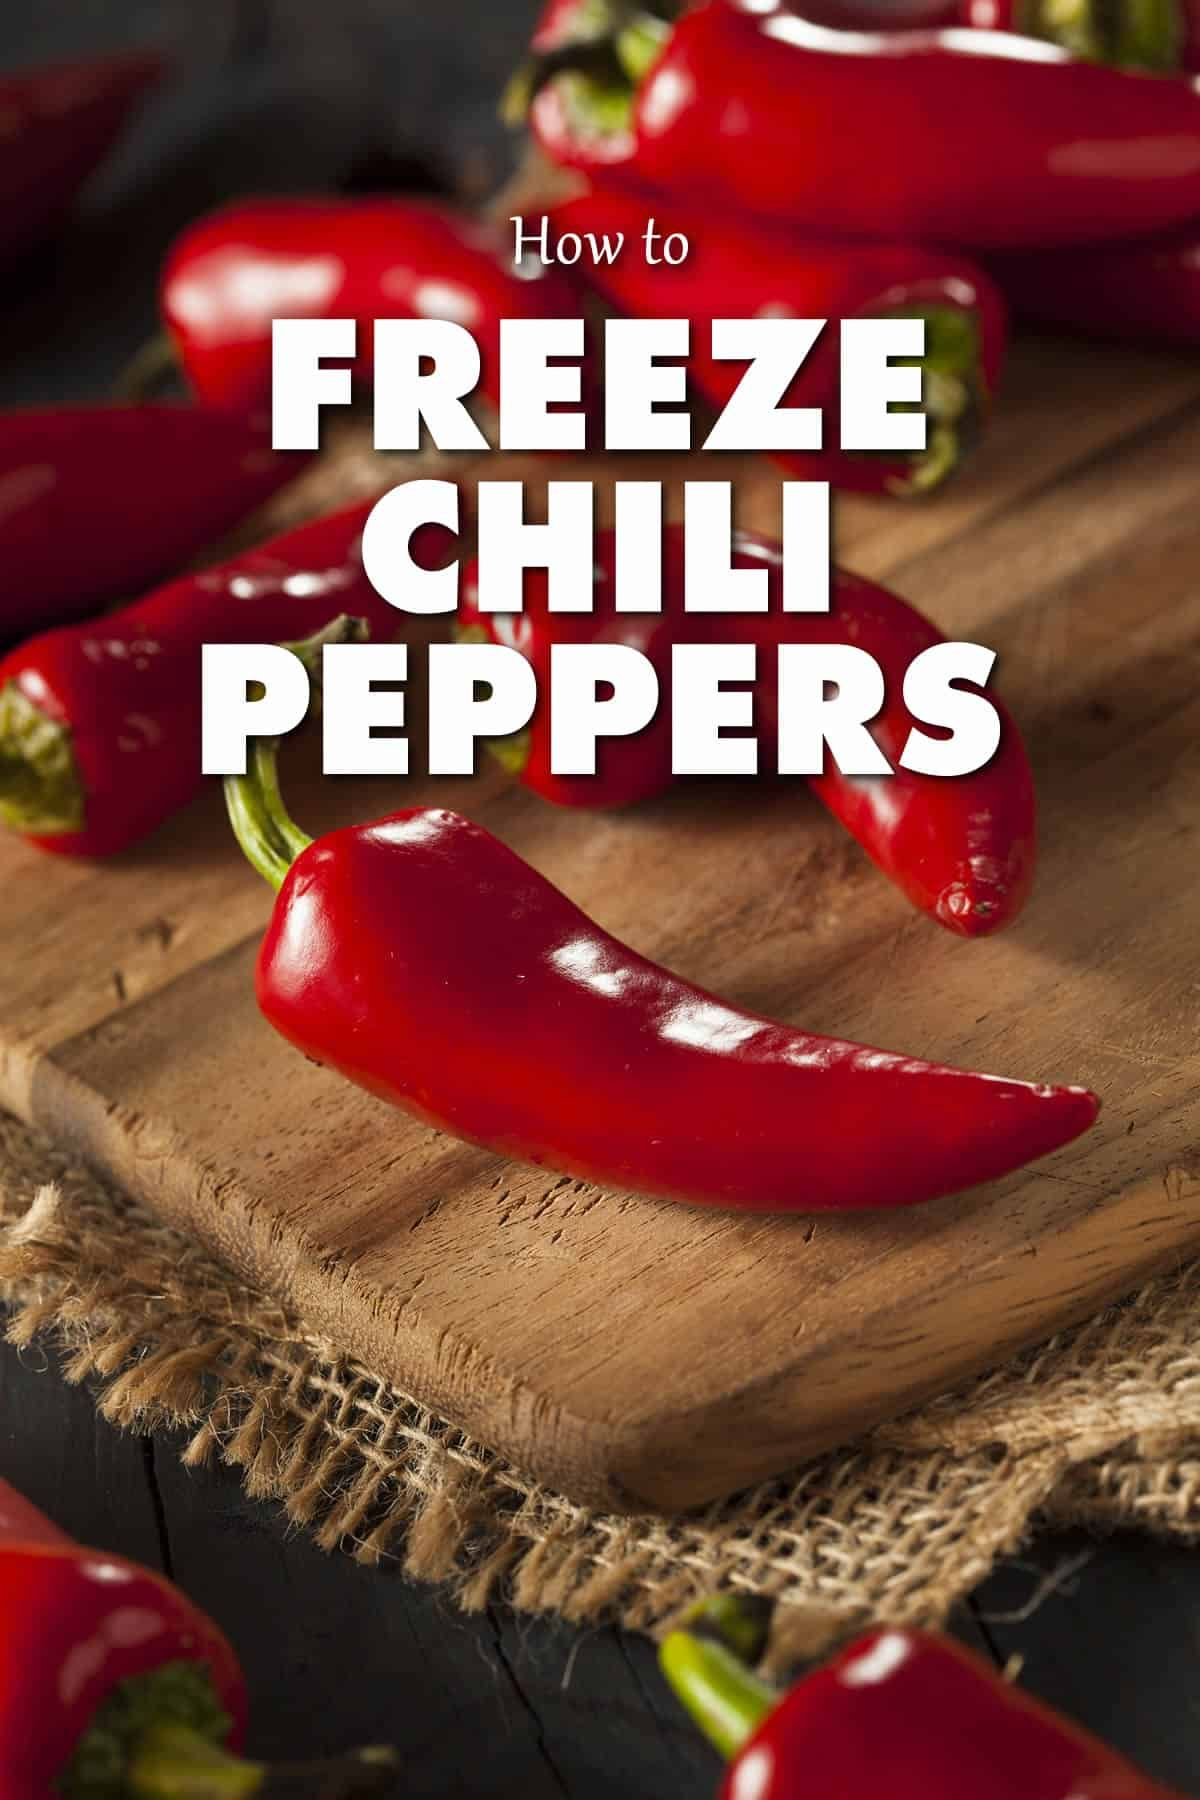 Freezing peppers is a great way to preserve your chili